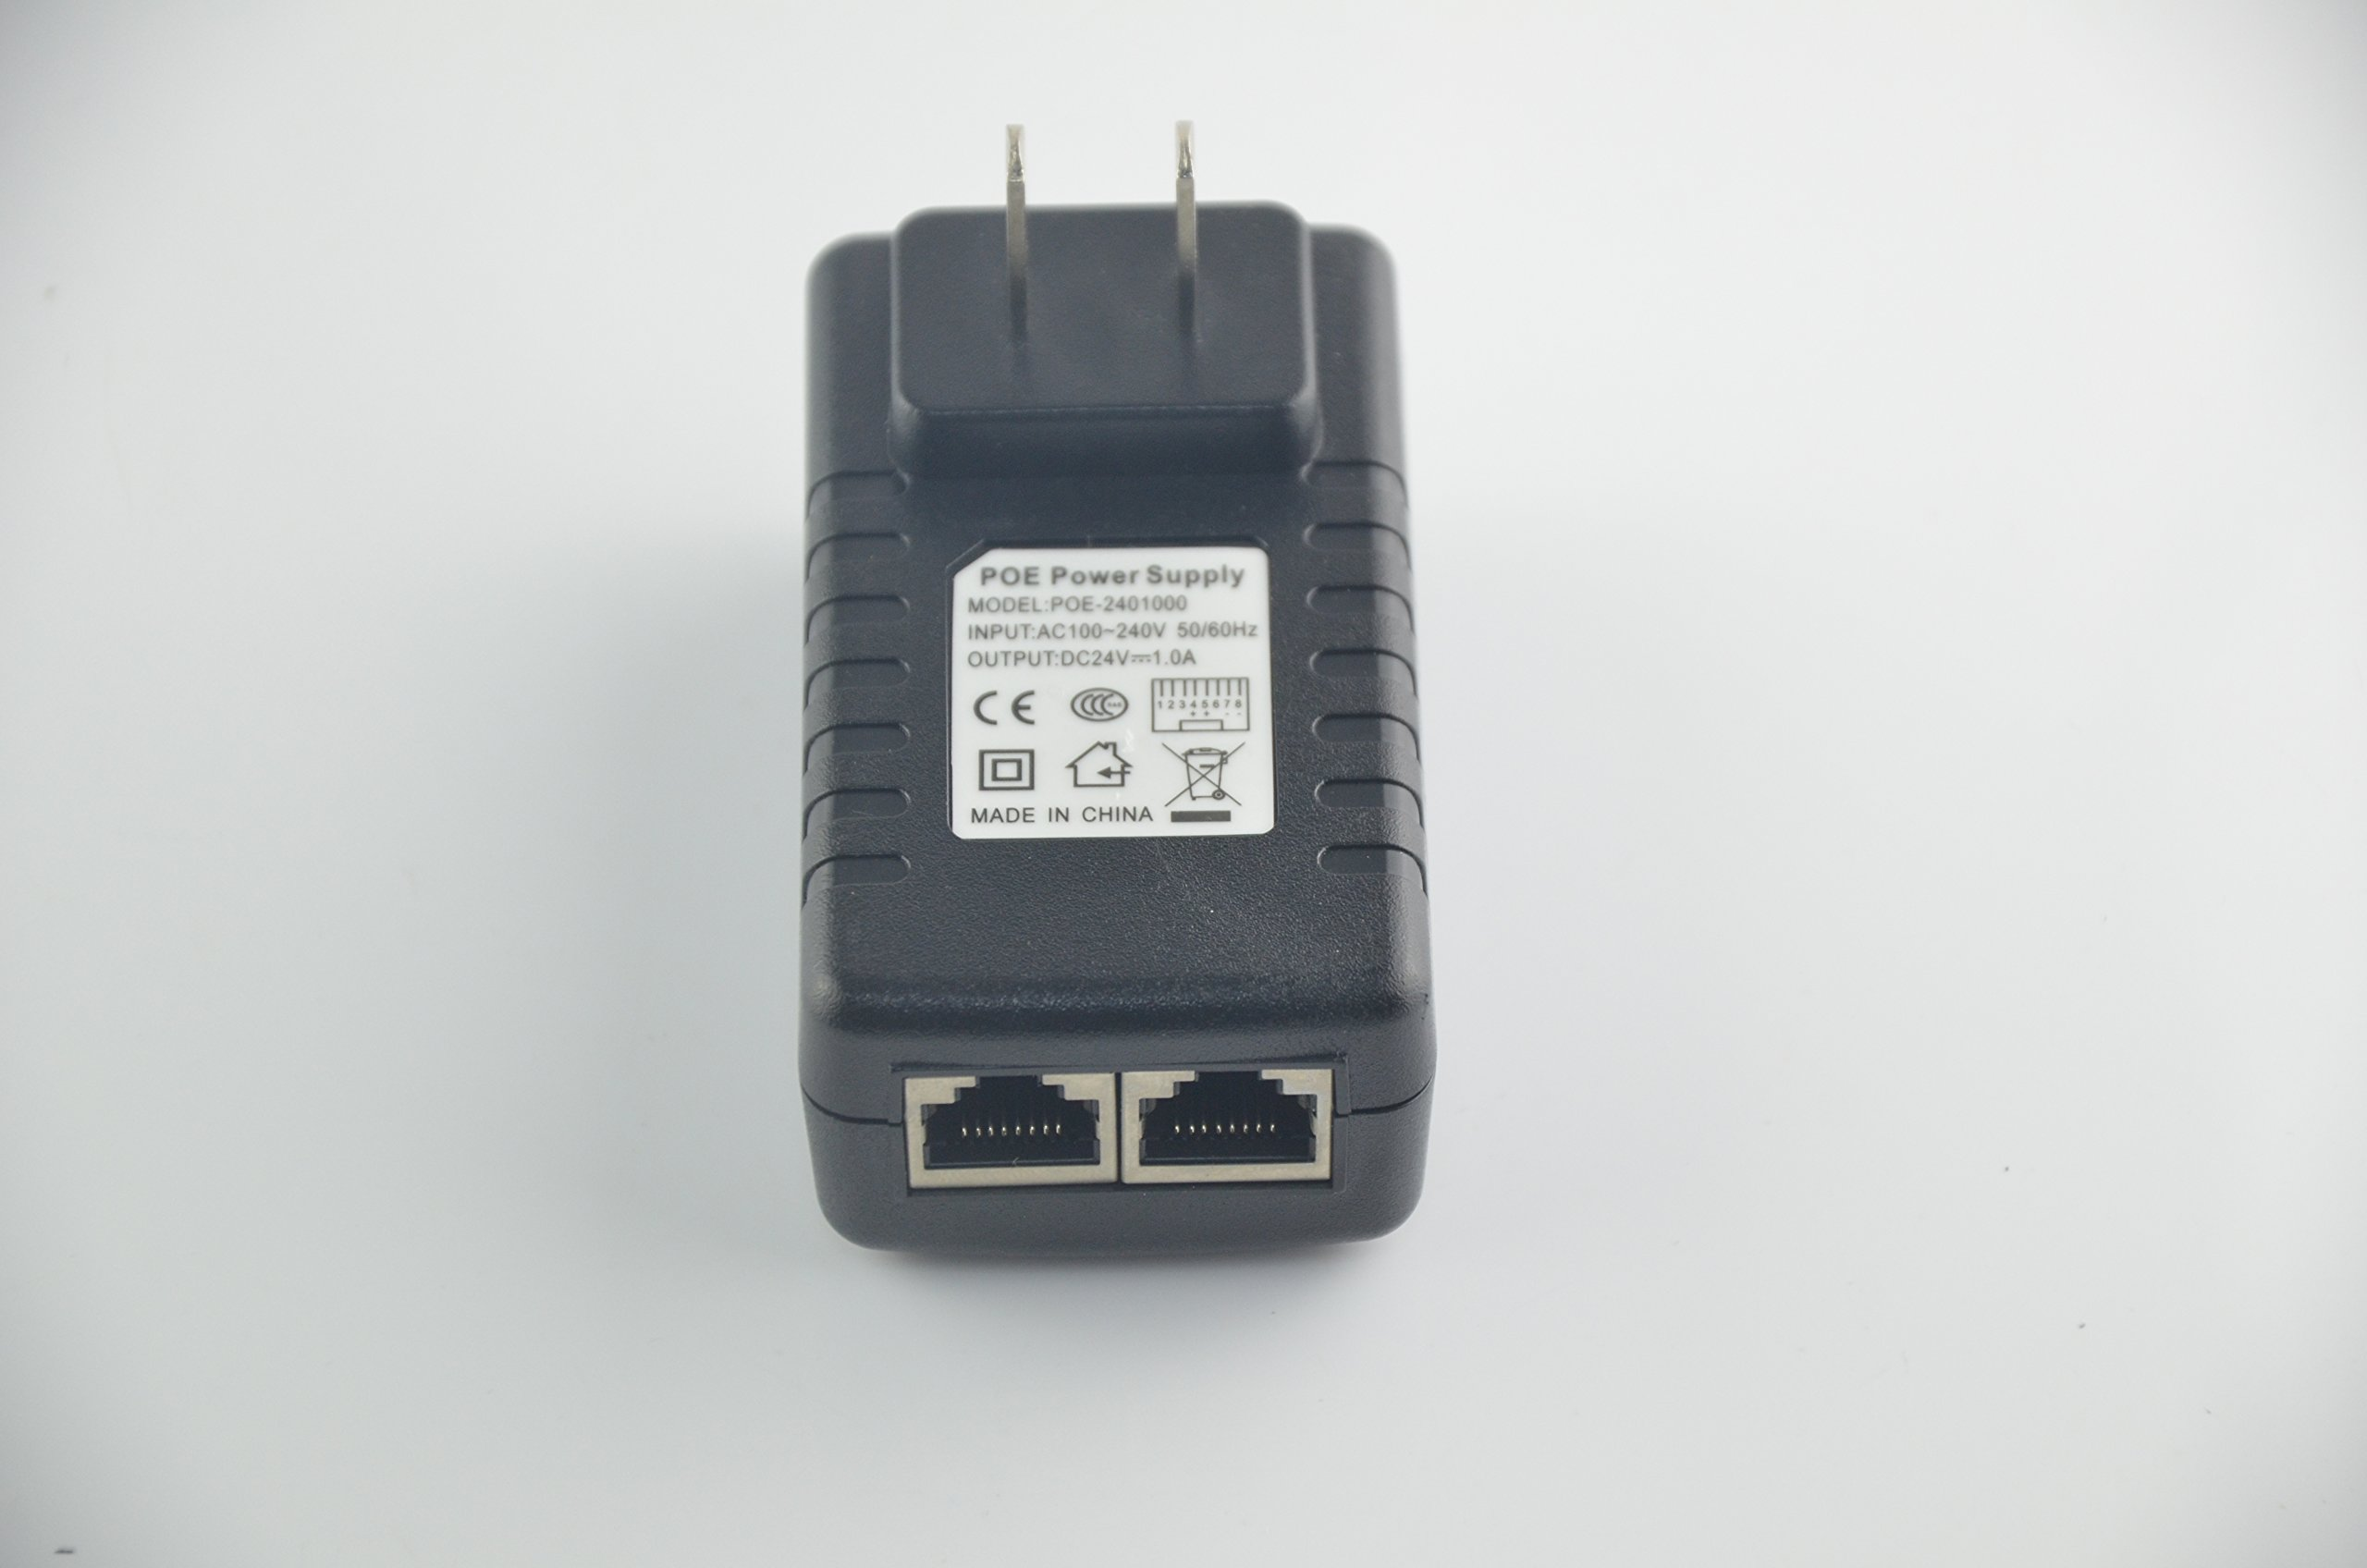 Cheap 24v Power Adapter Find Deals On Line At Adaptor Poe 1a Get Quotations Eathtek New Injector Over Ethernet